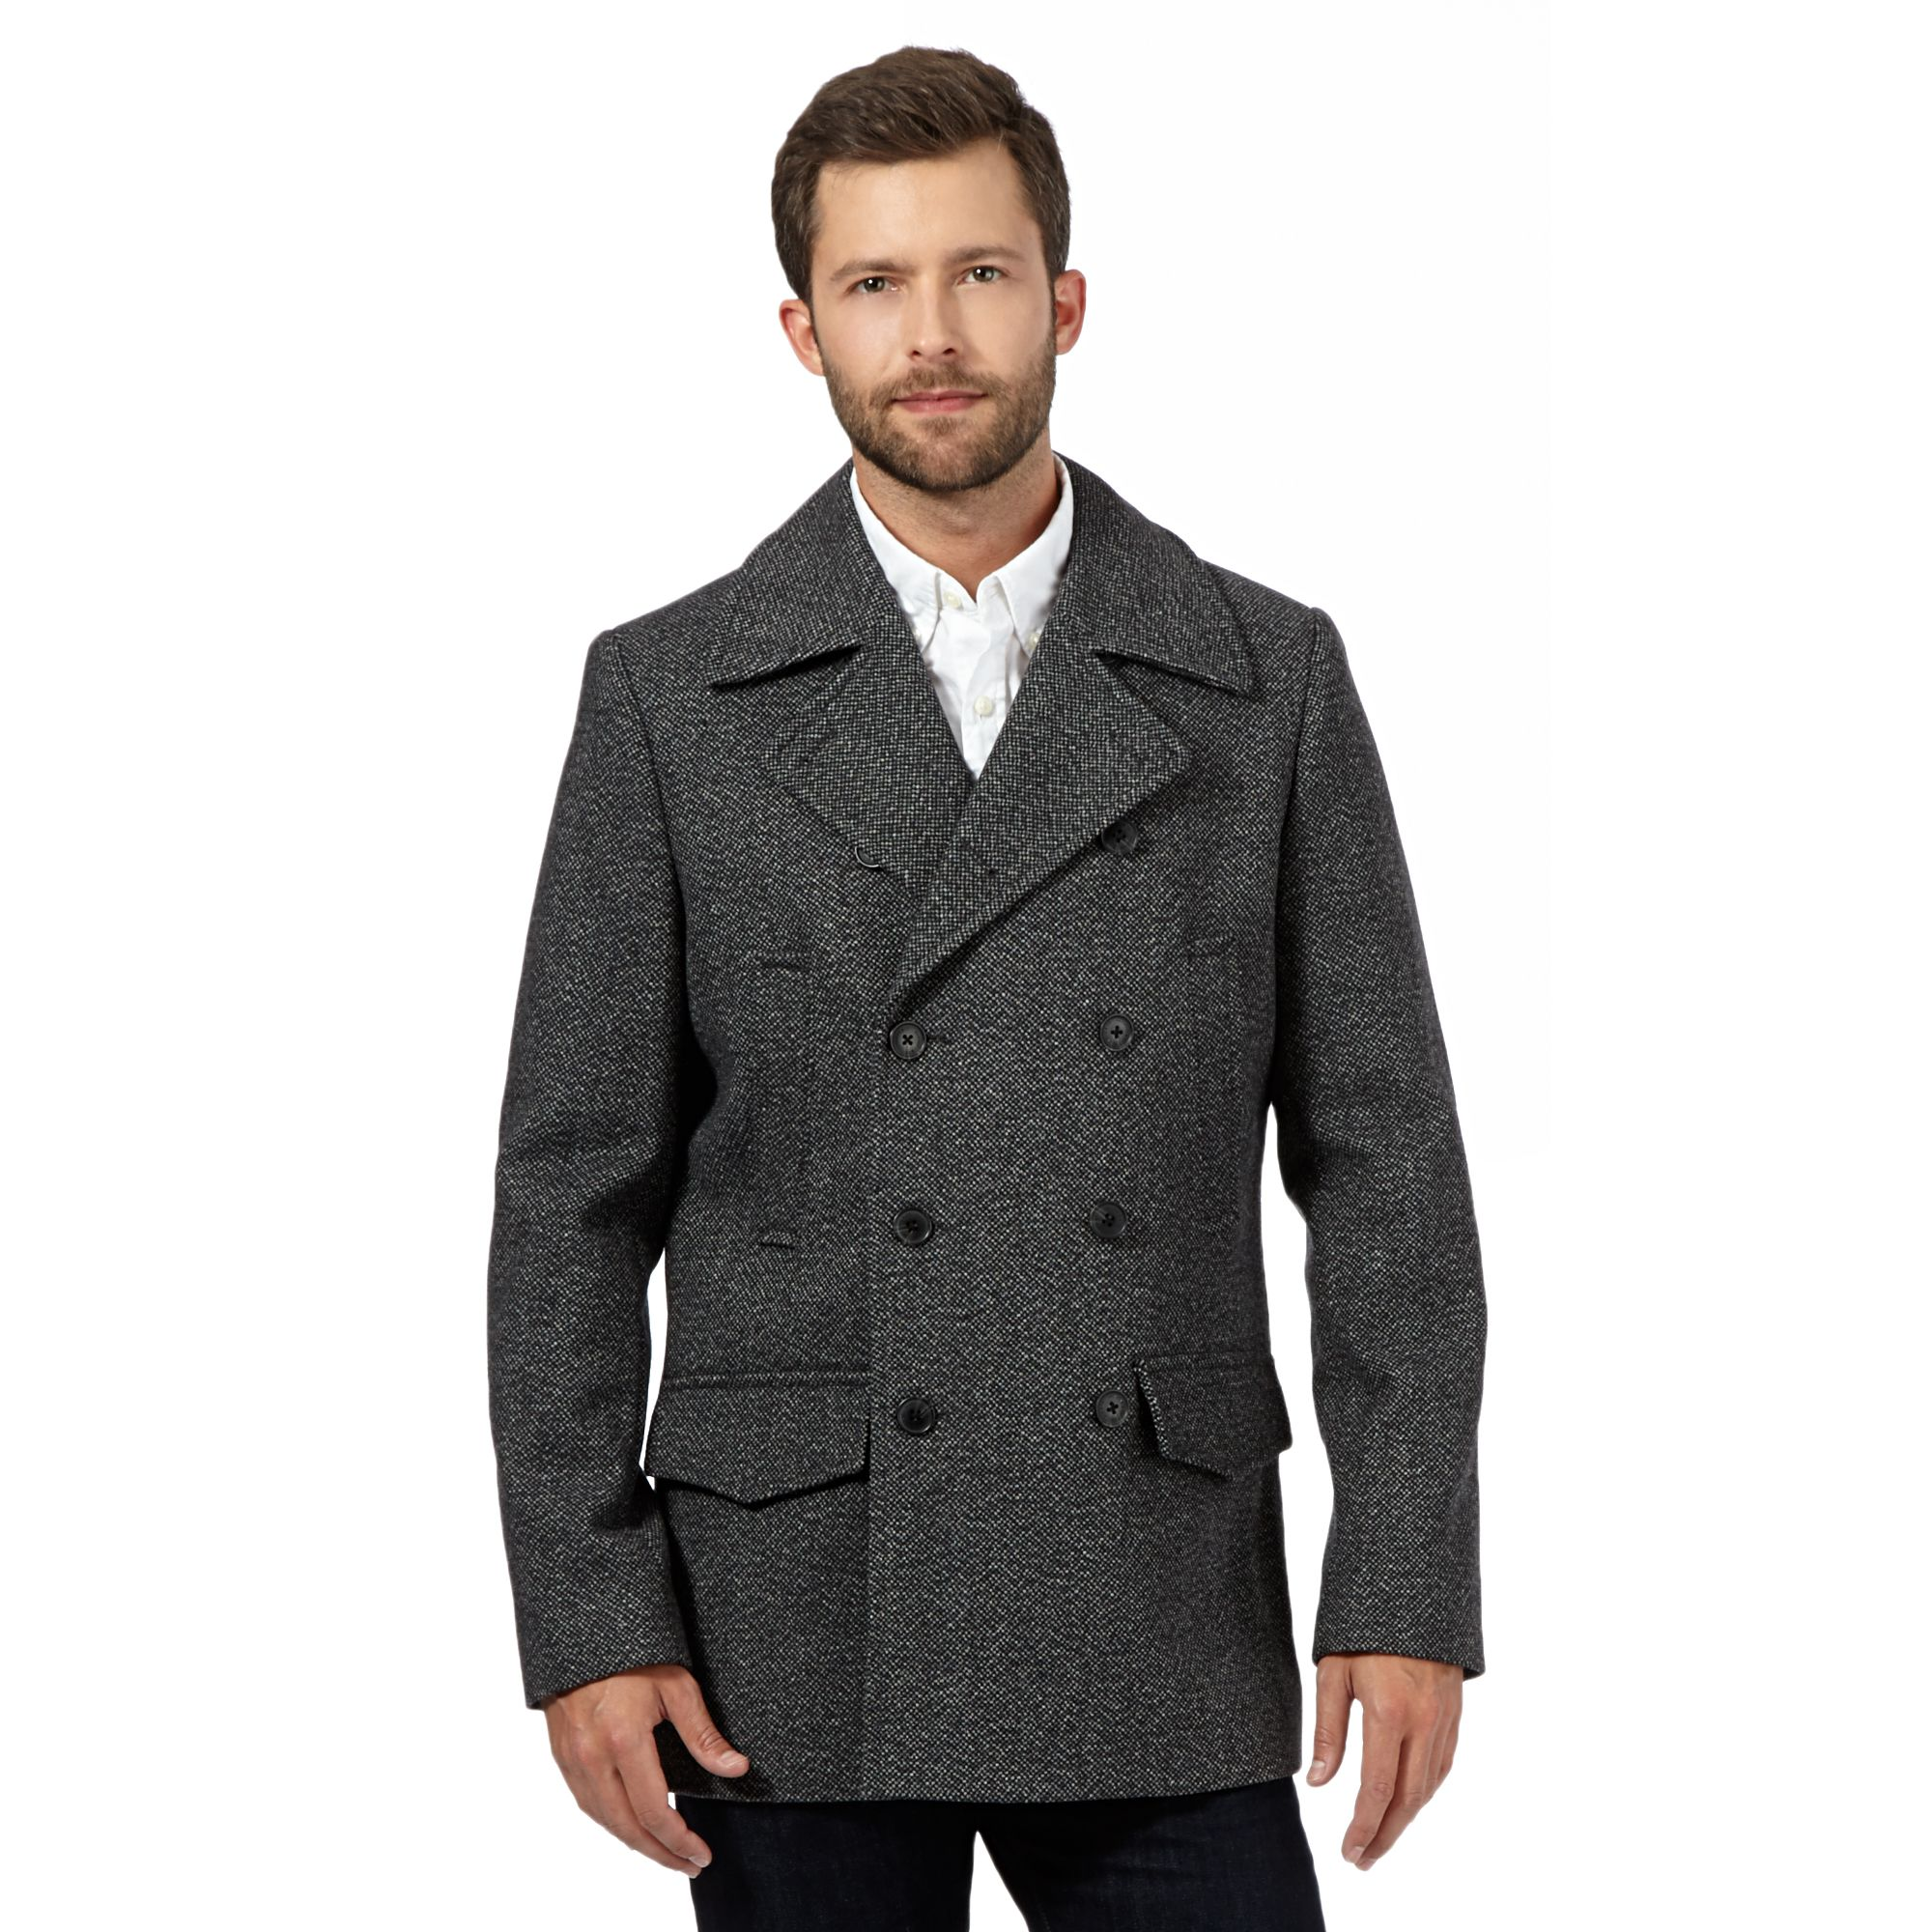 For over a century, our Mackinaw wool coats have kept outdoor workers warm through rainy, snowy Northwest winters. Our Mackinaw wool is versatile, breathable, and water-repellent made from the fleece of sheep grown in North America. For over a century, our Mackinaw wool coats have kept outdoor.